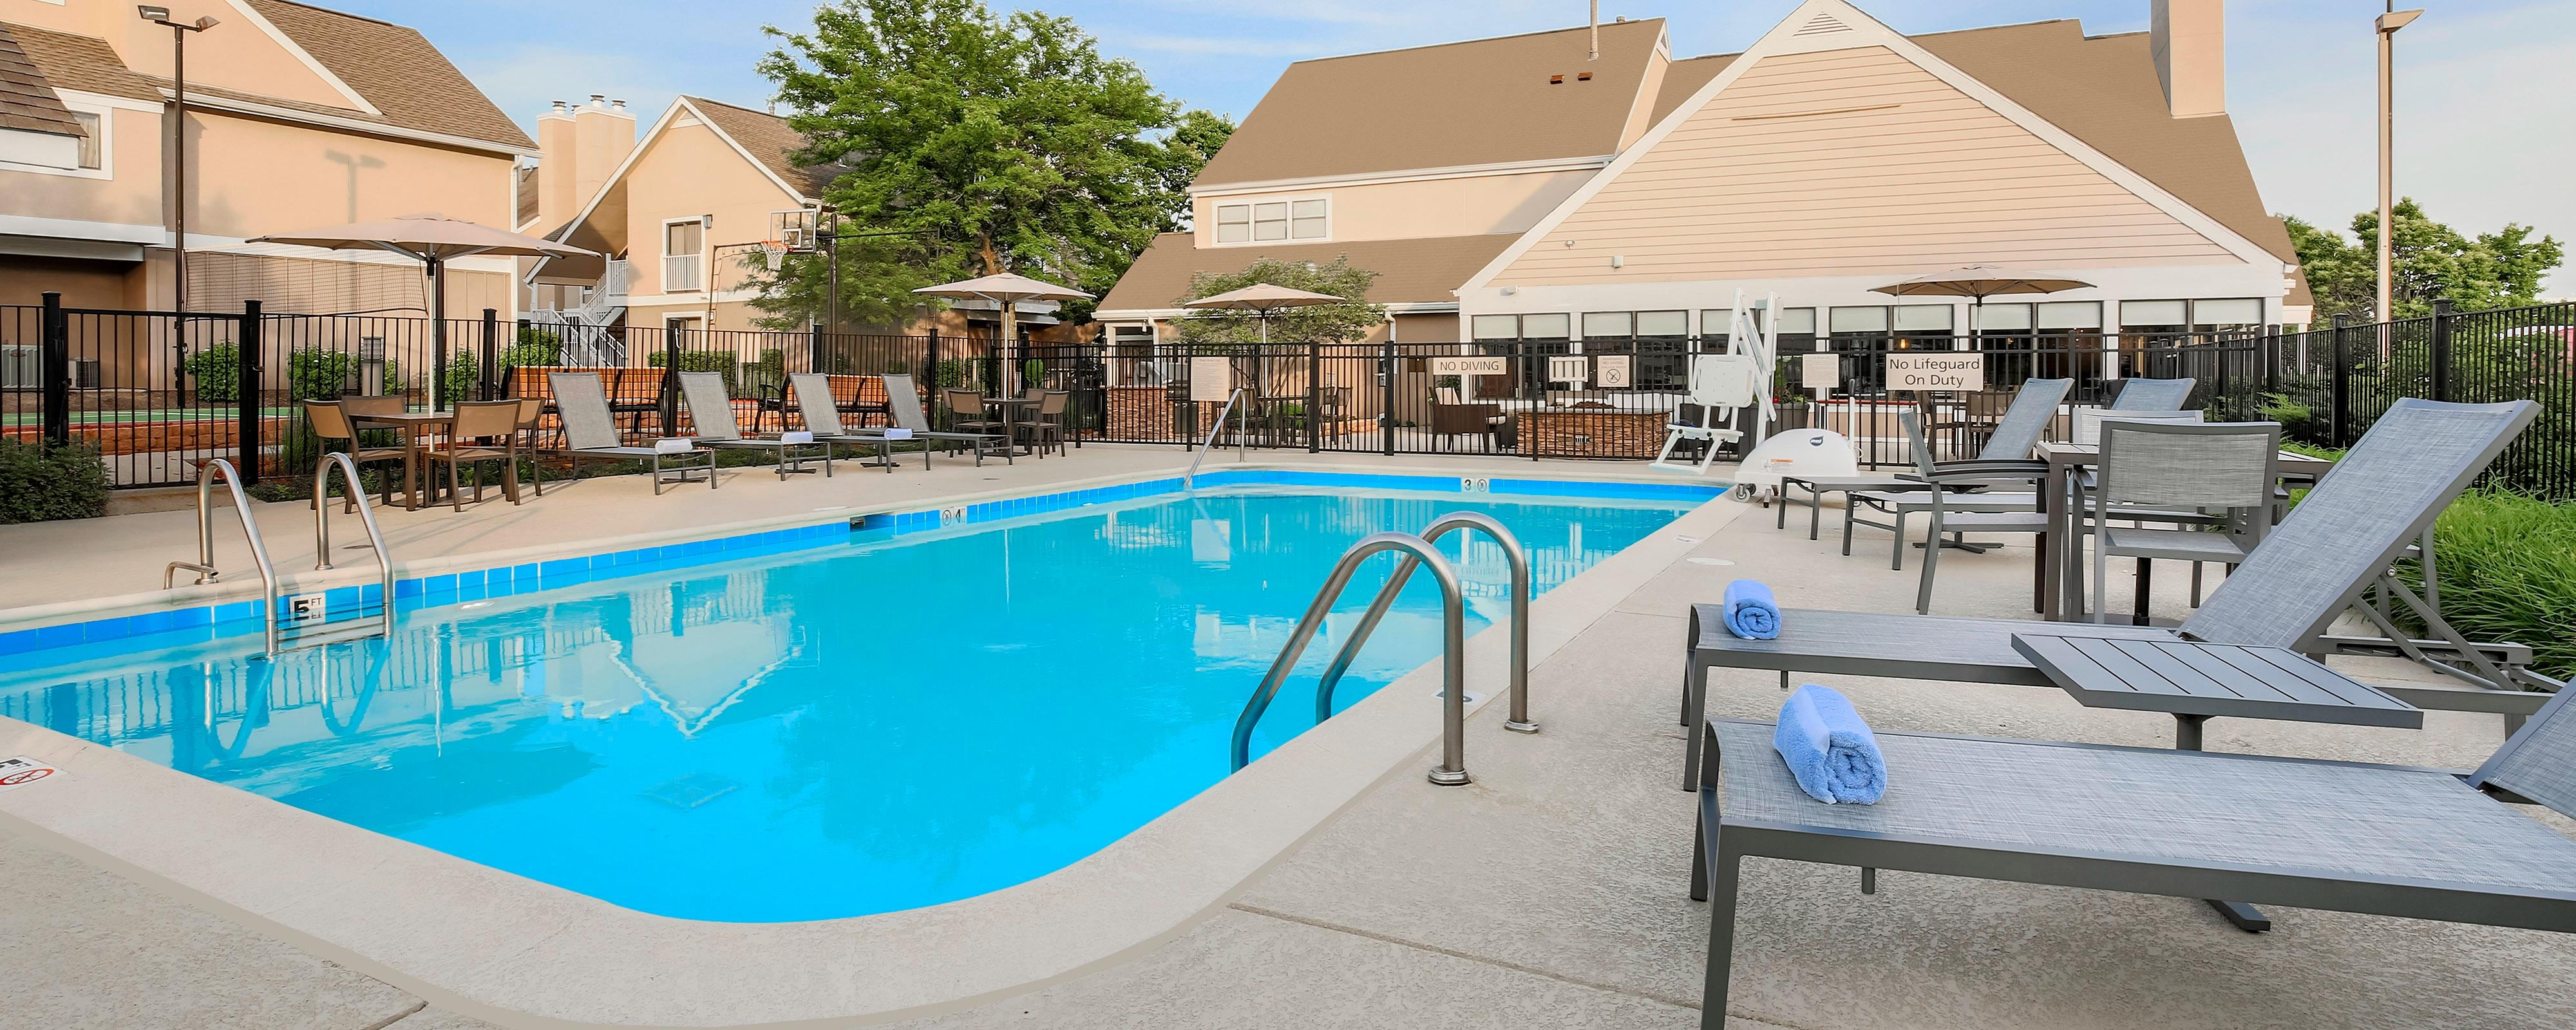 Deerfield Extended Stay Hotel Gym